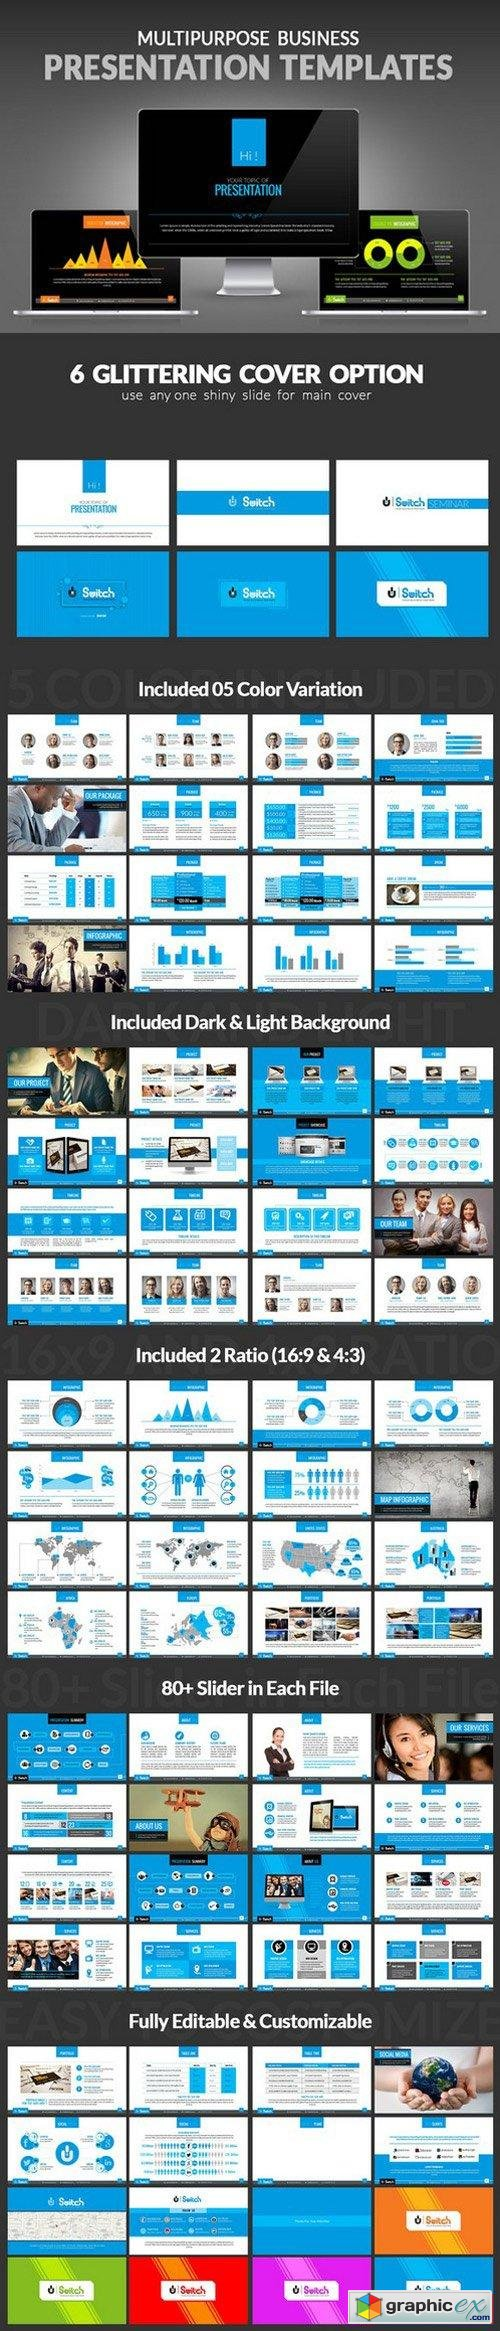 PowerPoint Presentation Template 895468